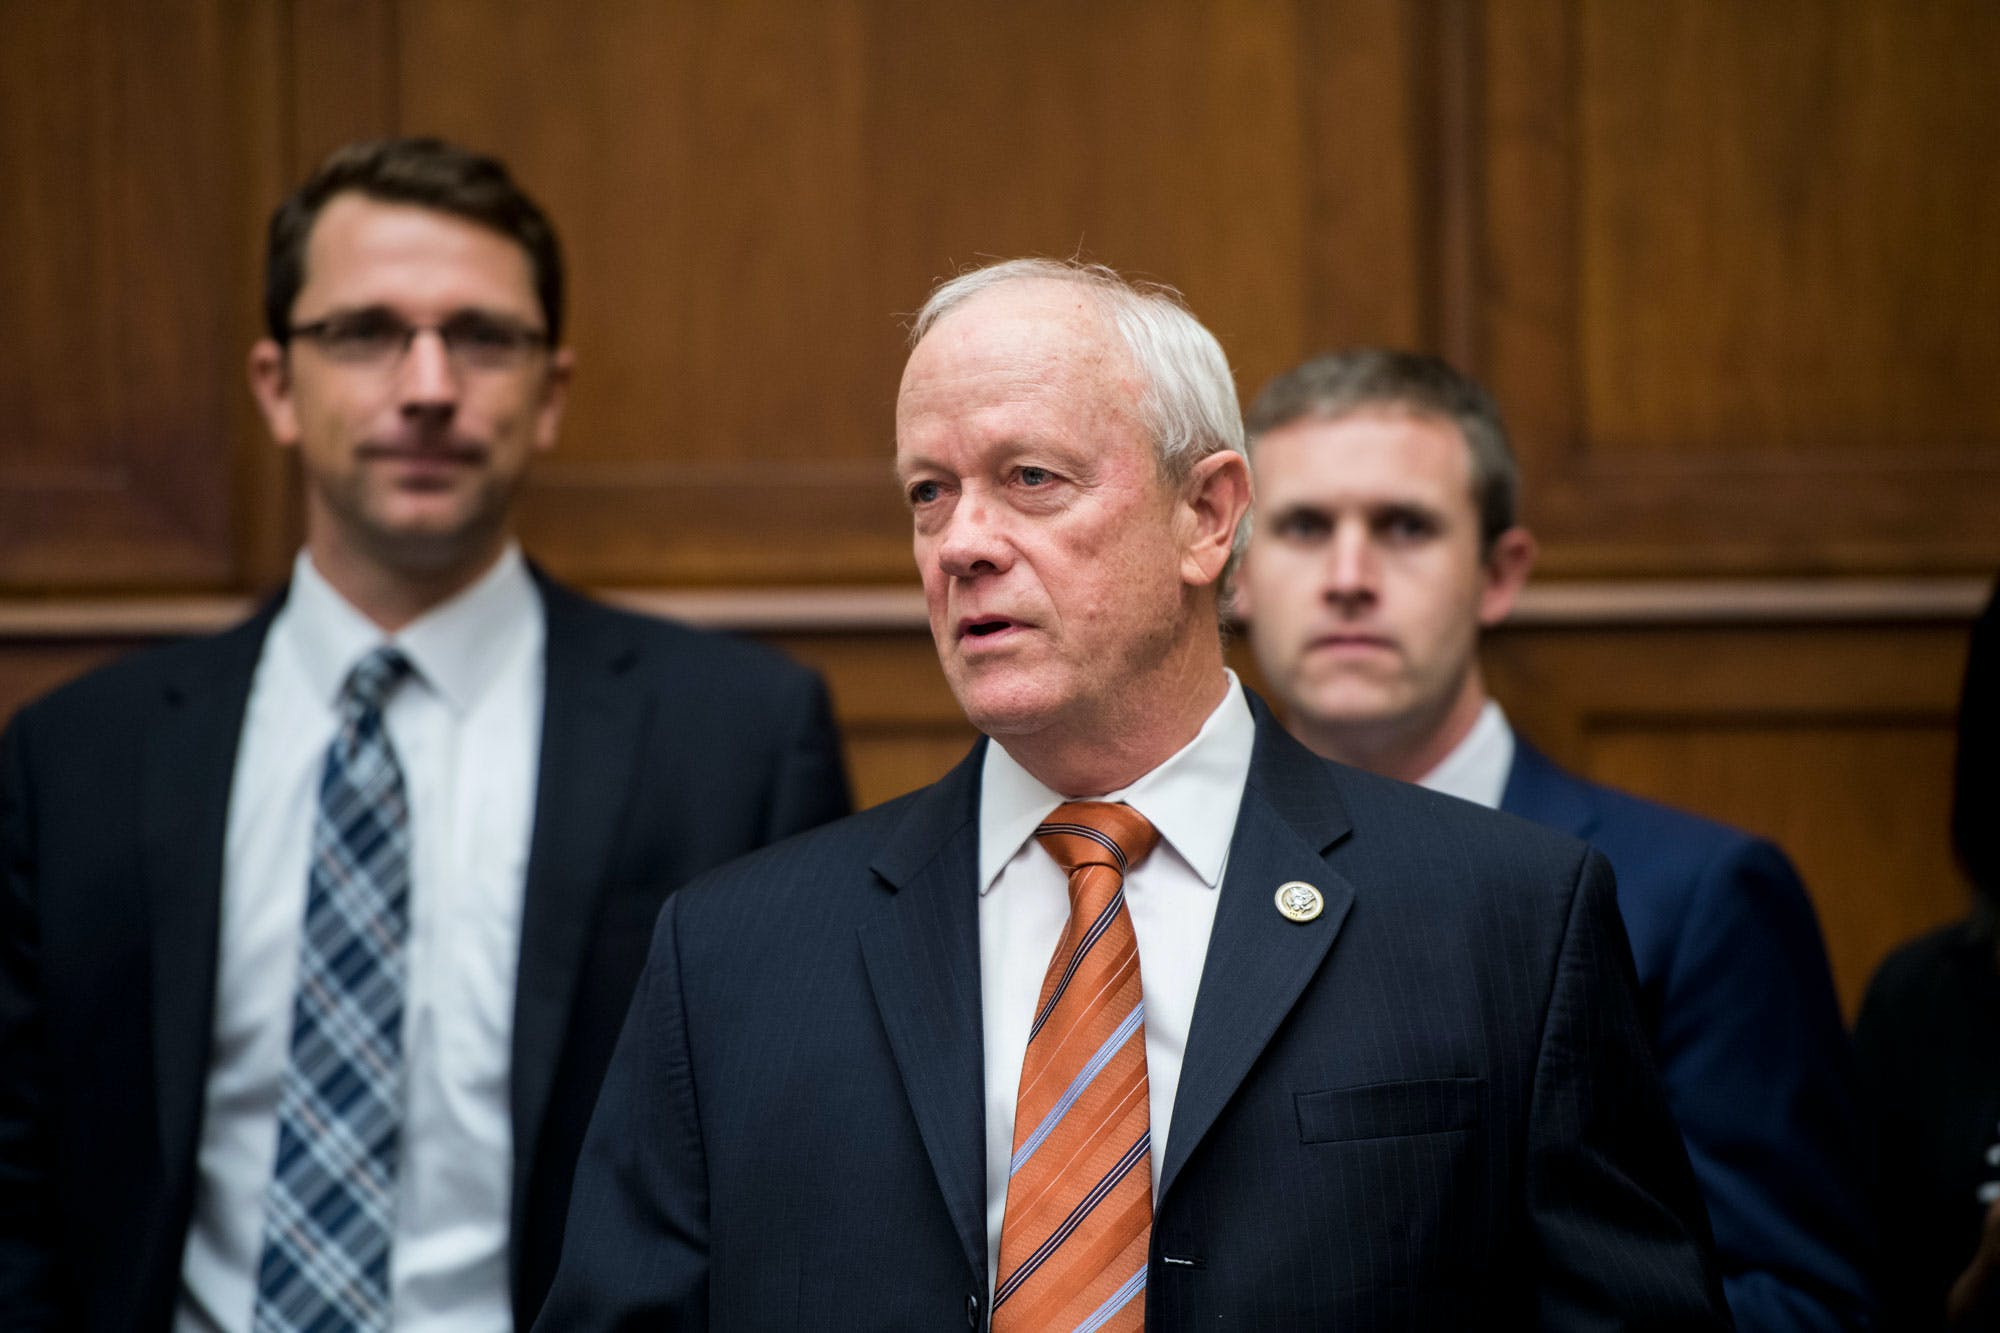 UNITED STATES - OCTOBER 12: Rep. Jerry McNerney, D-Calif., arrives for the House Energy and Commerce Committee hearing on Thursday, Oct. 12, 2017. (Photo By Bill Clark/CQ Roll Call) (CQ Roll Call via AP Images)